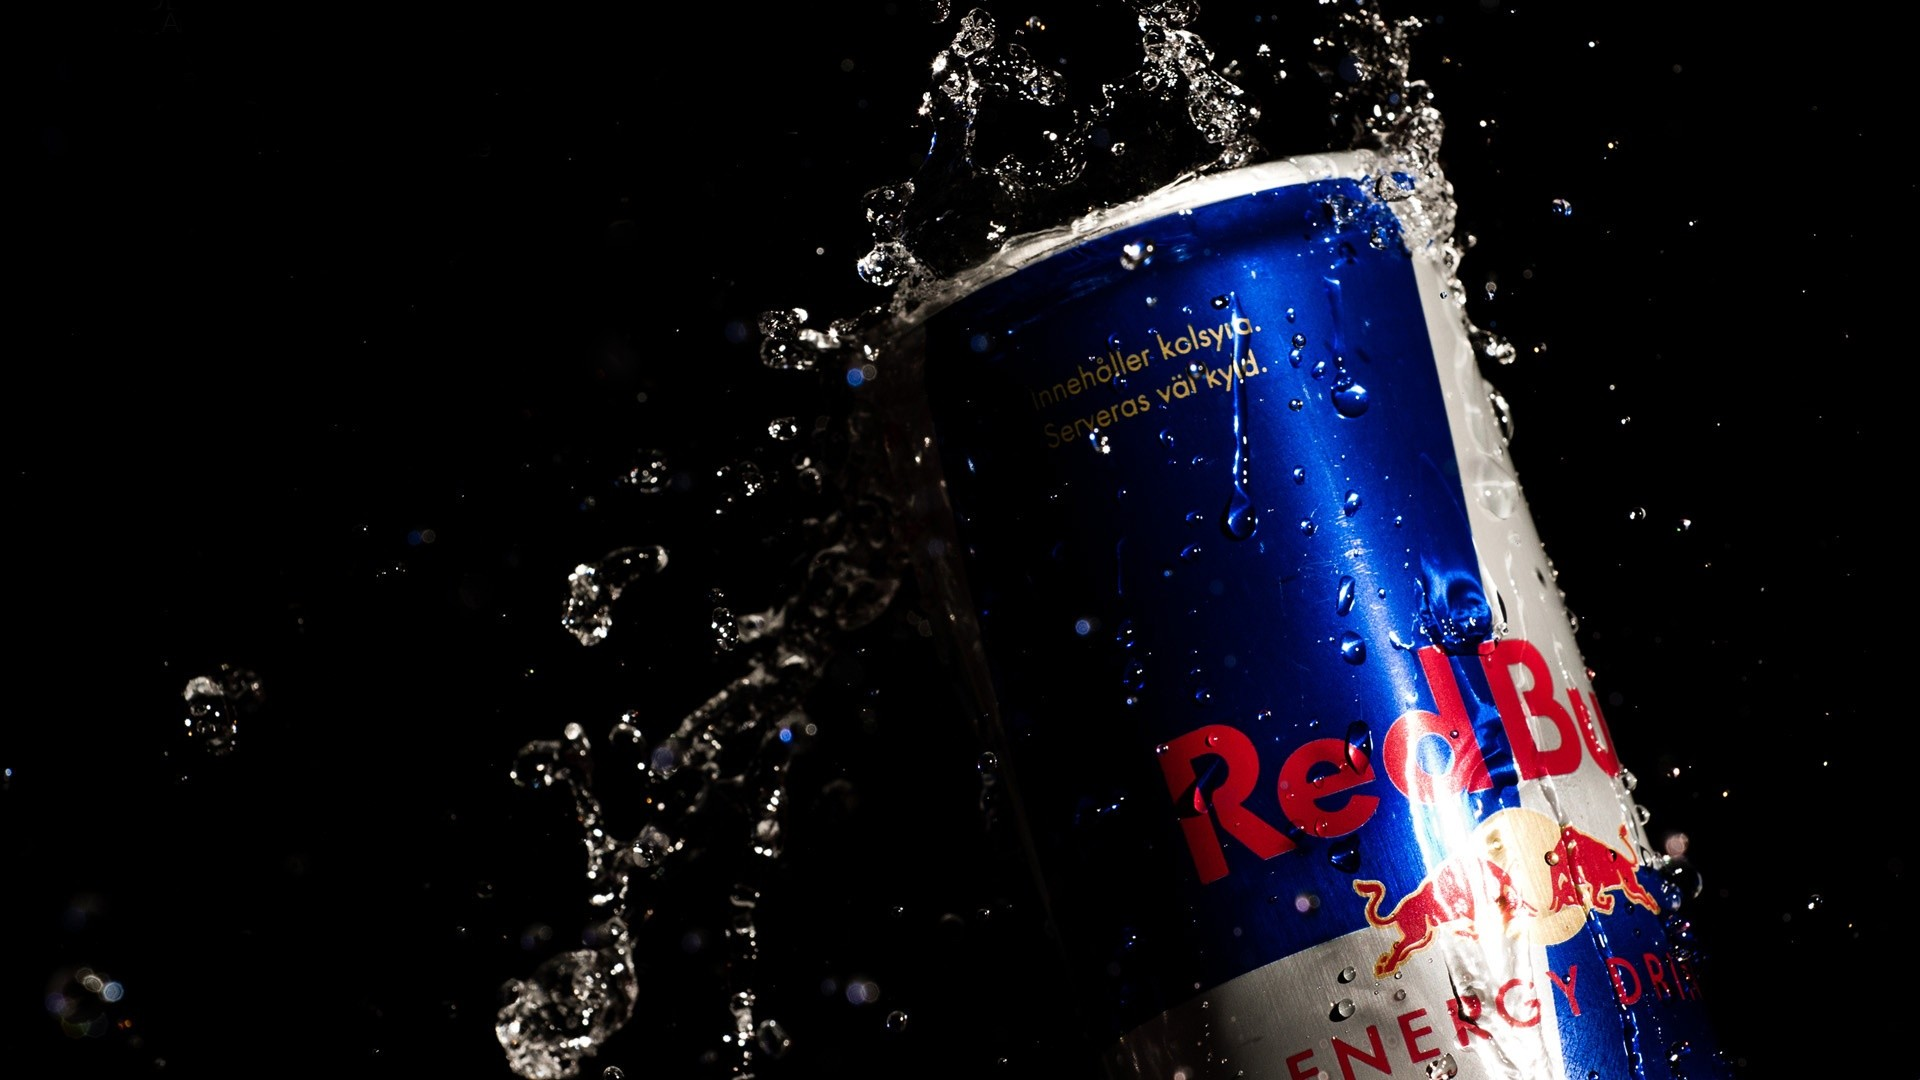 1920x1080 Backgrounds In High Quality: Red Bull by Marietta Amrhein, 10.08.16